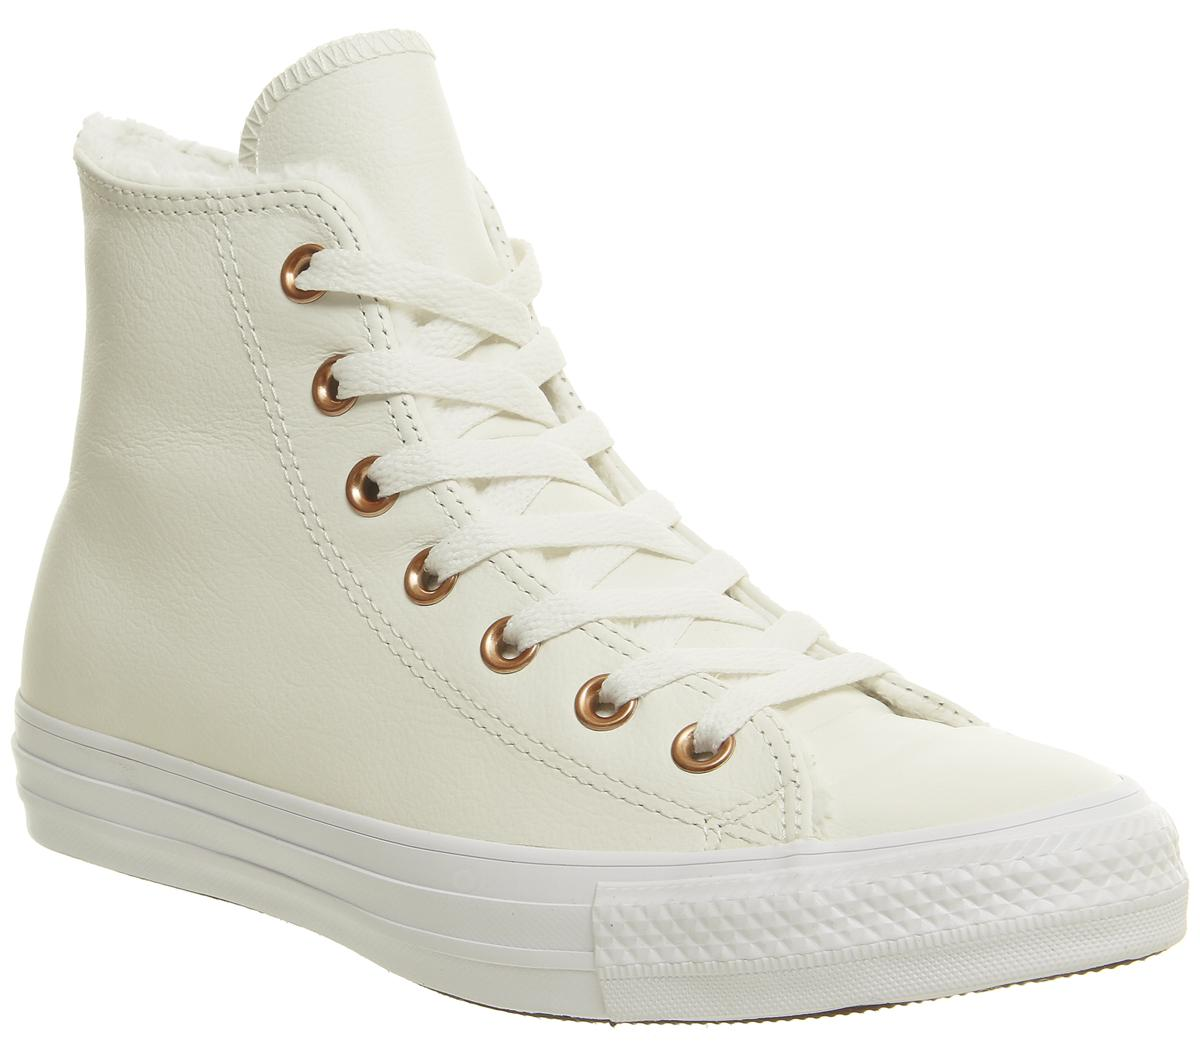 Converse All Star Hi Leather Egret Fur Hers Trainers